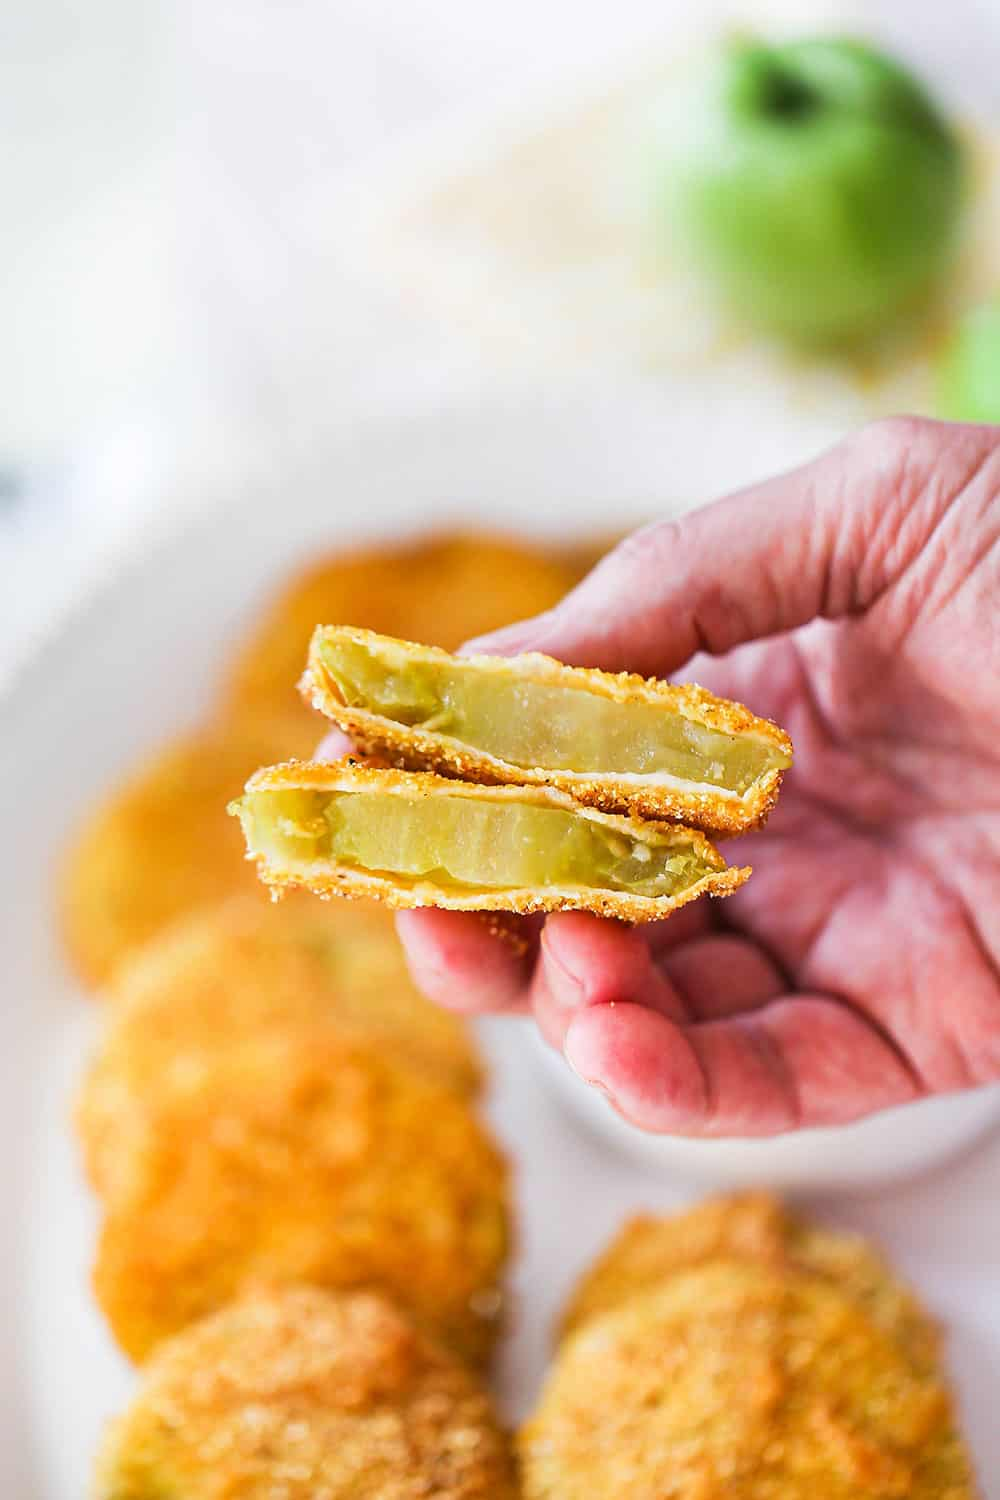 A hand holding up a fried green tomato that has been in half so the inside of the tomato is visible.